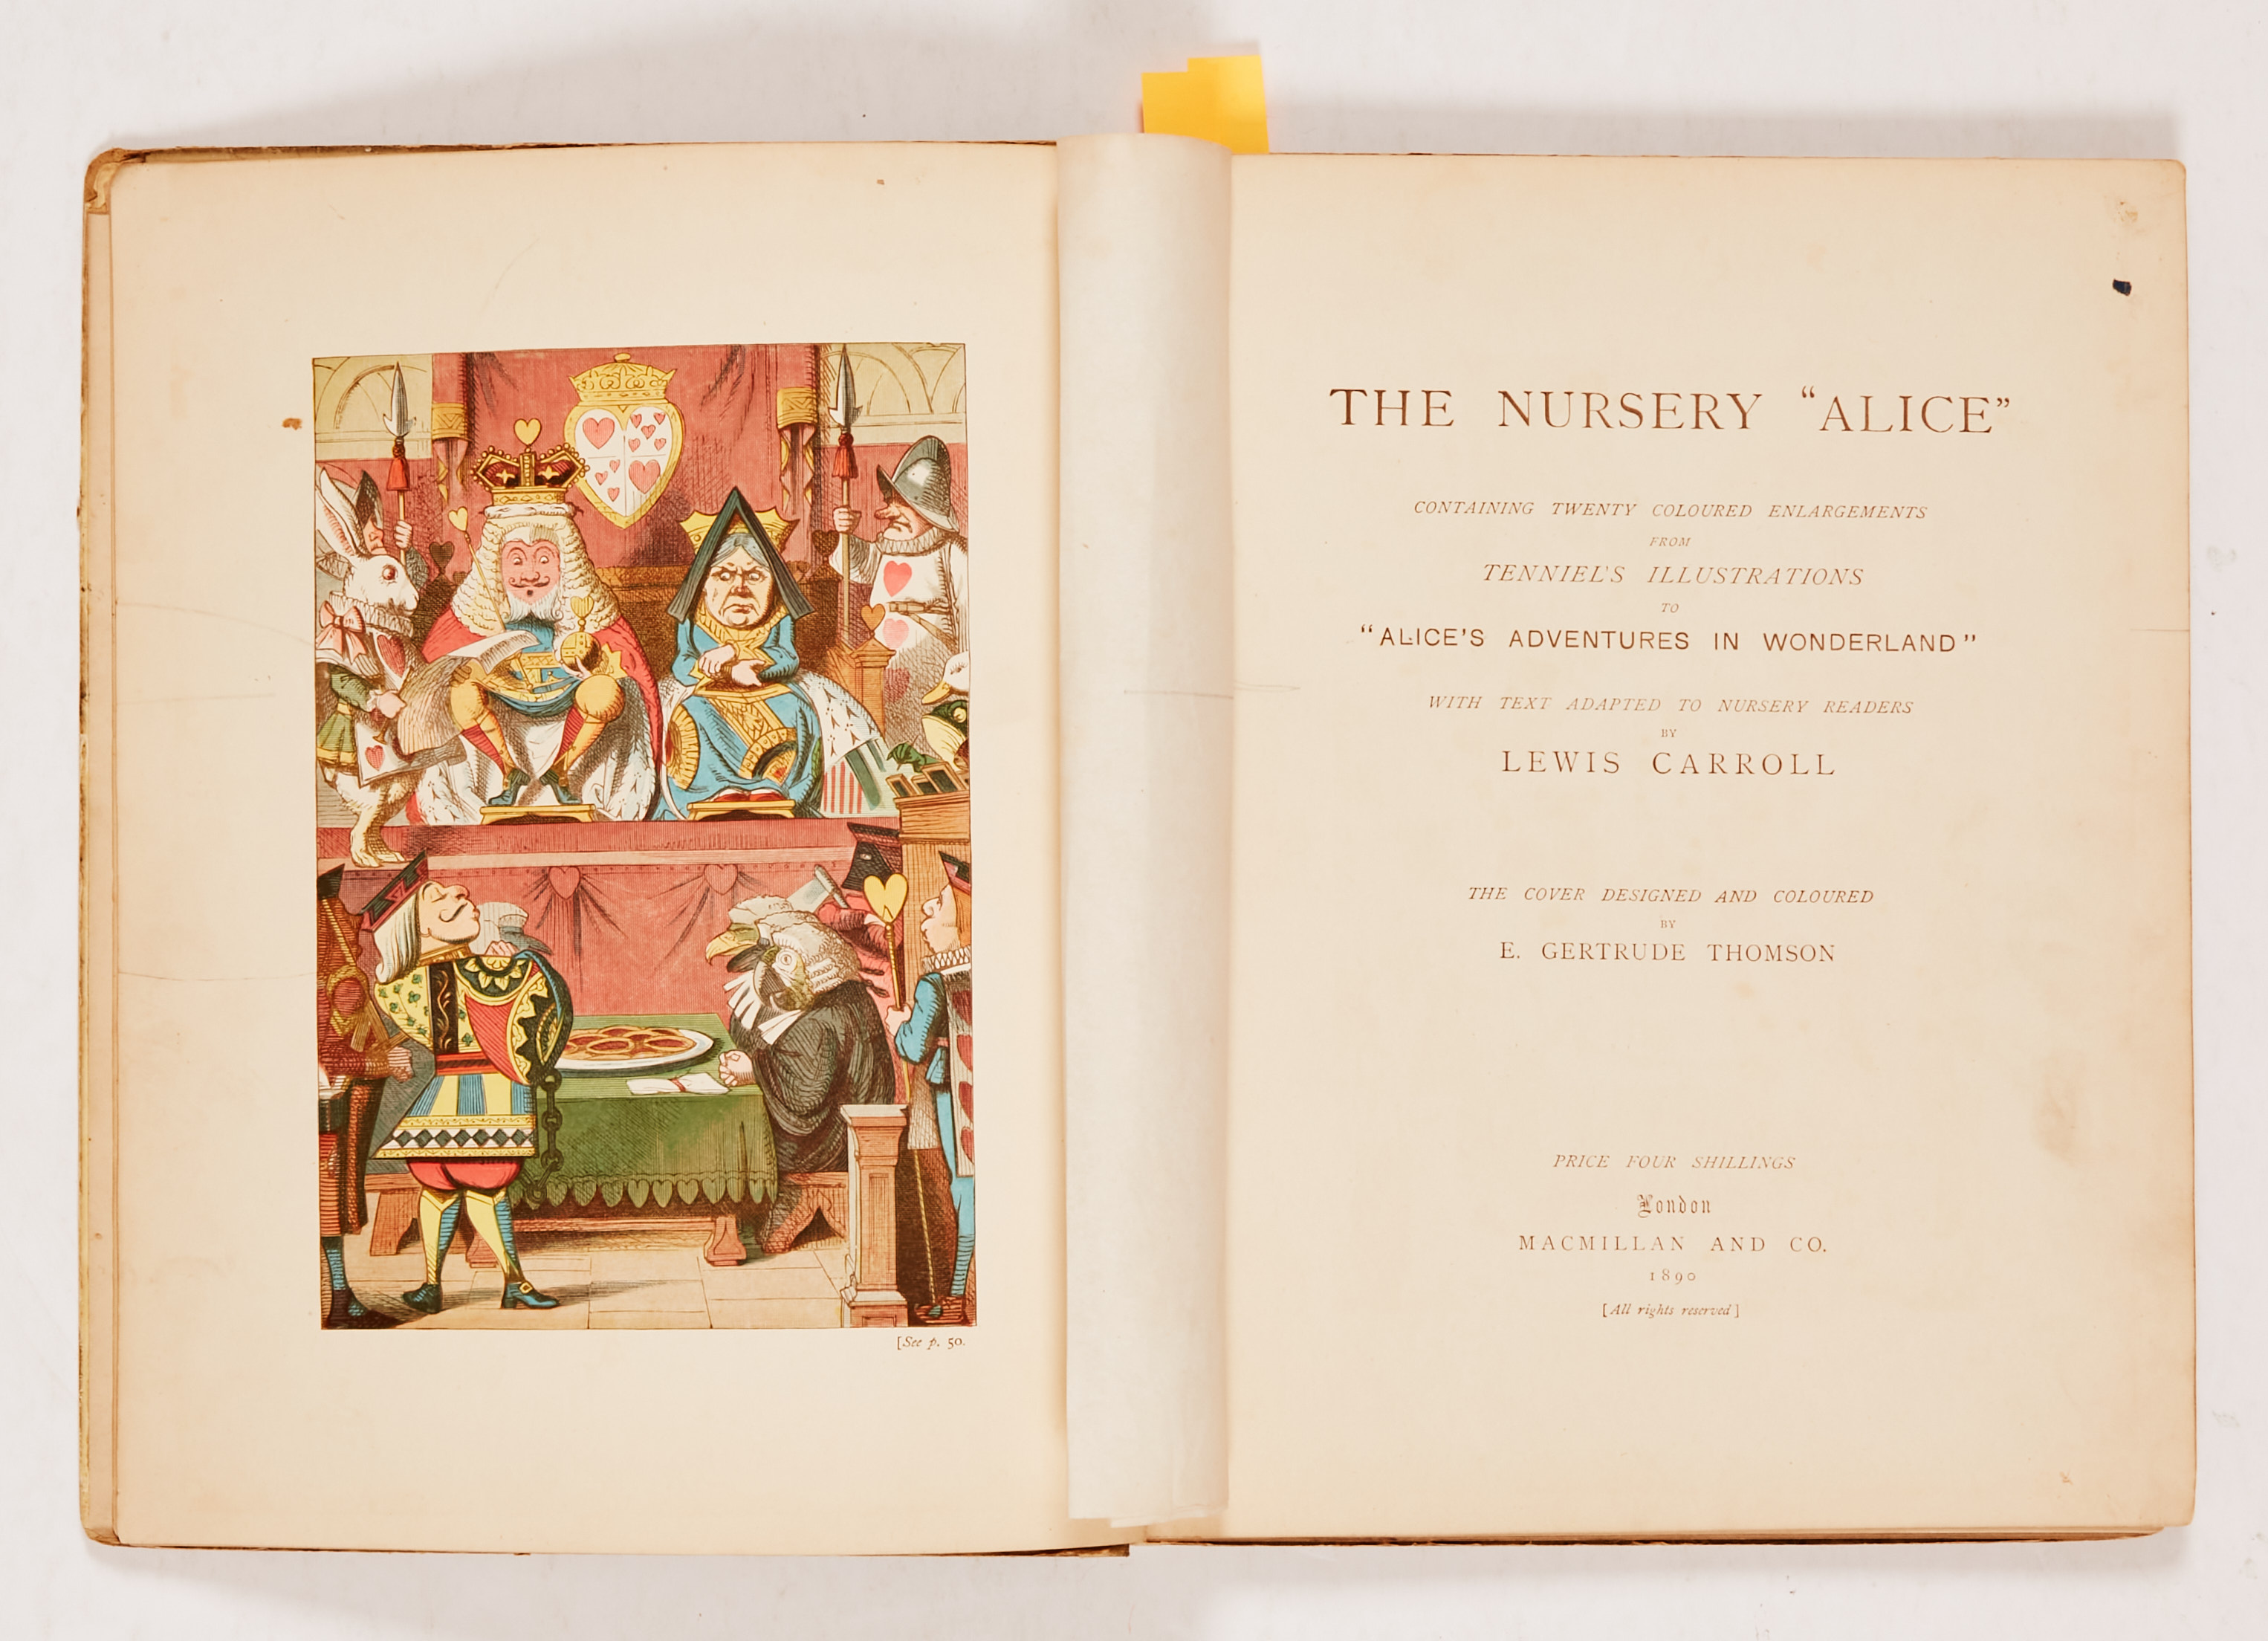 """The Nursery """"Alice"""" (1890 MacMillan and Co). Second edition containing 20 coloured enlargements from - Image 2 of 4"""